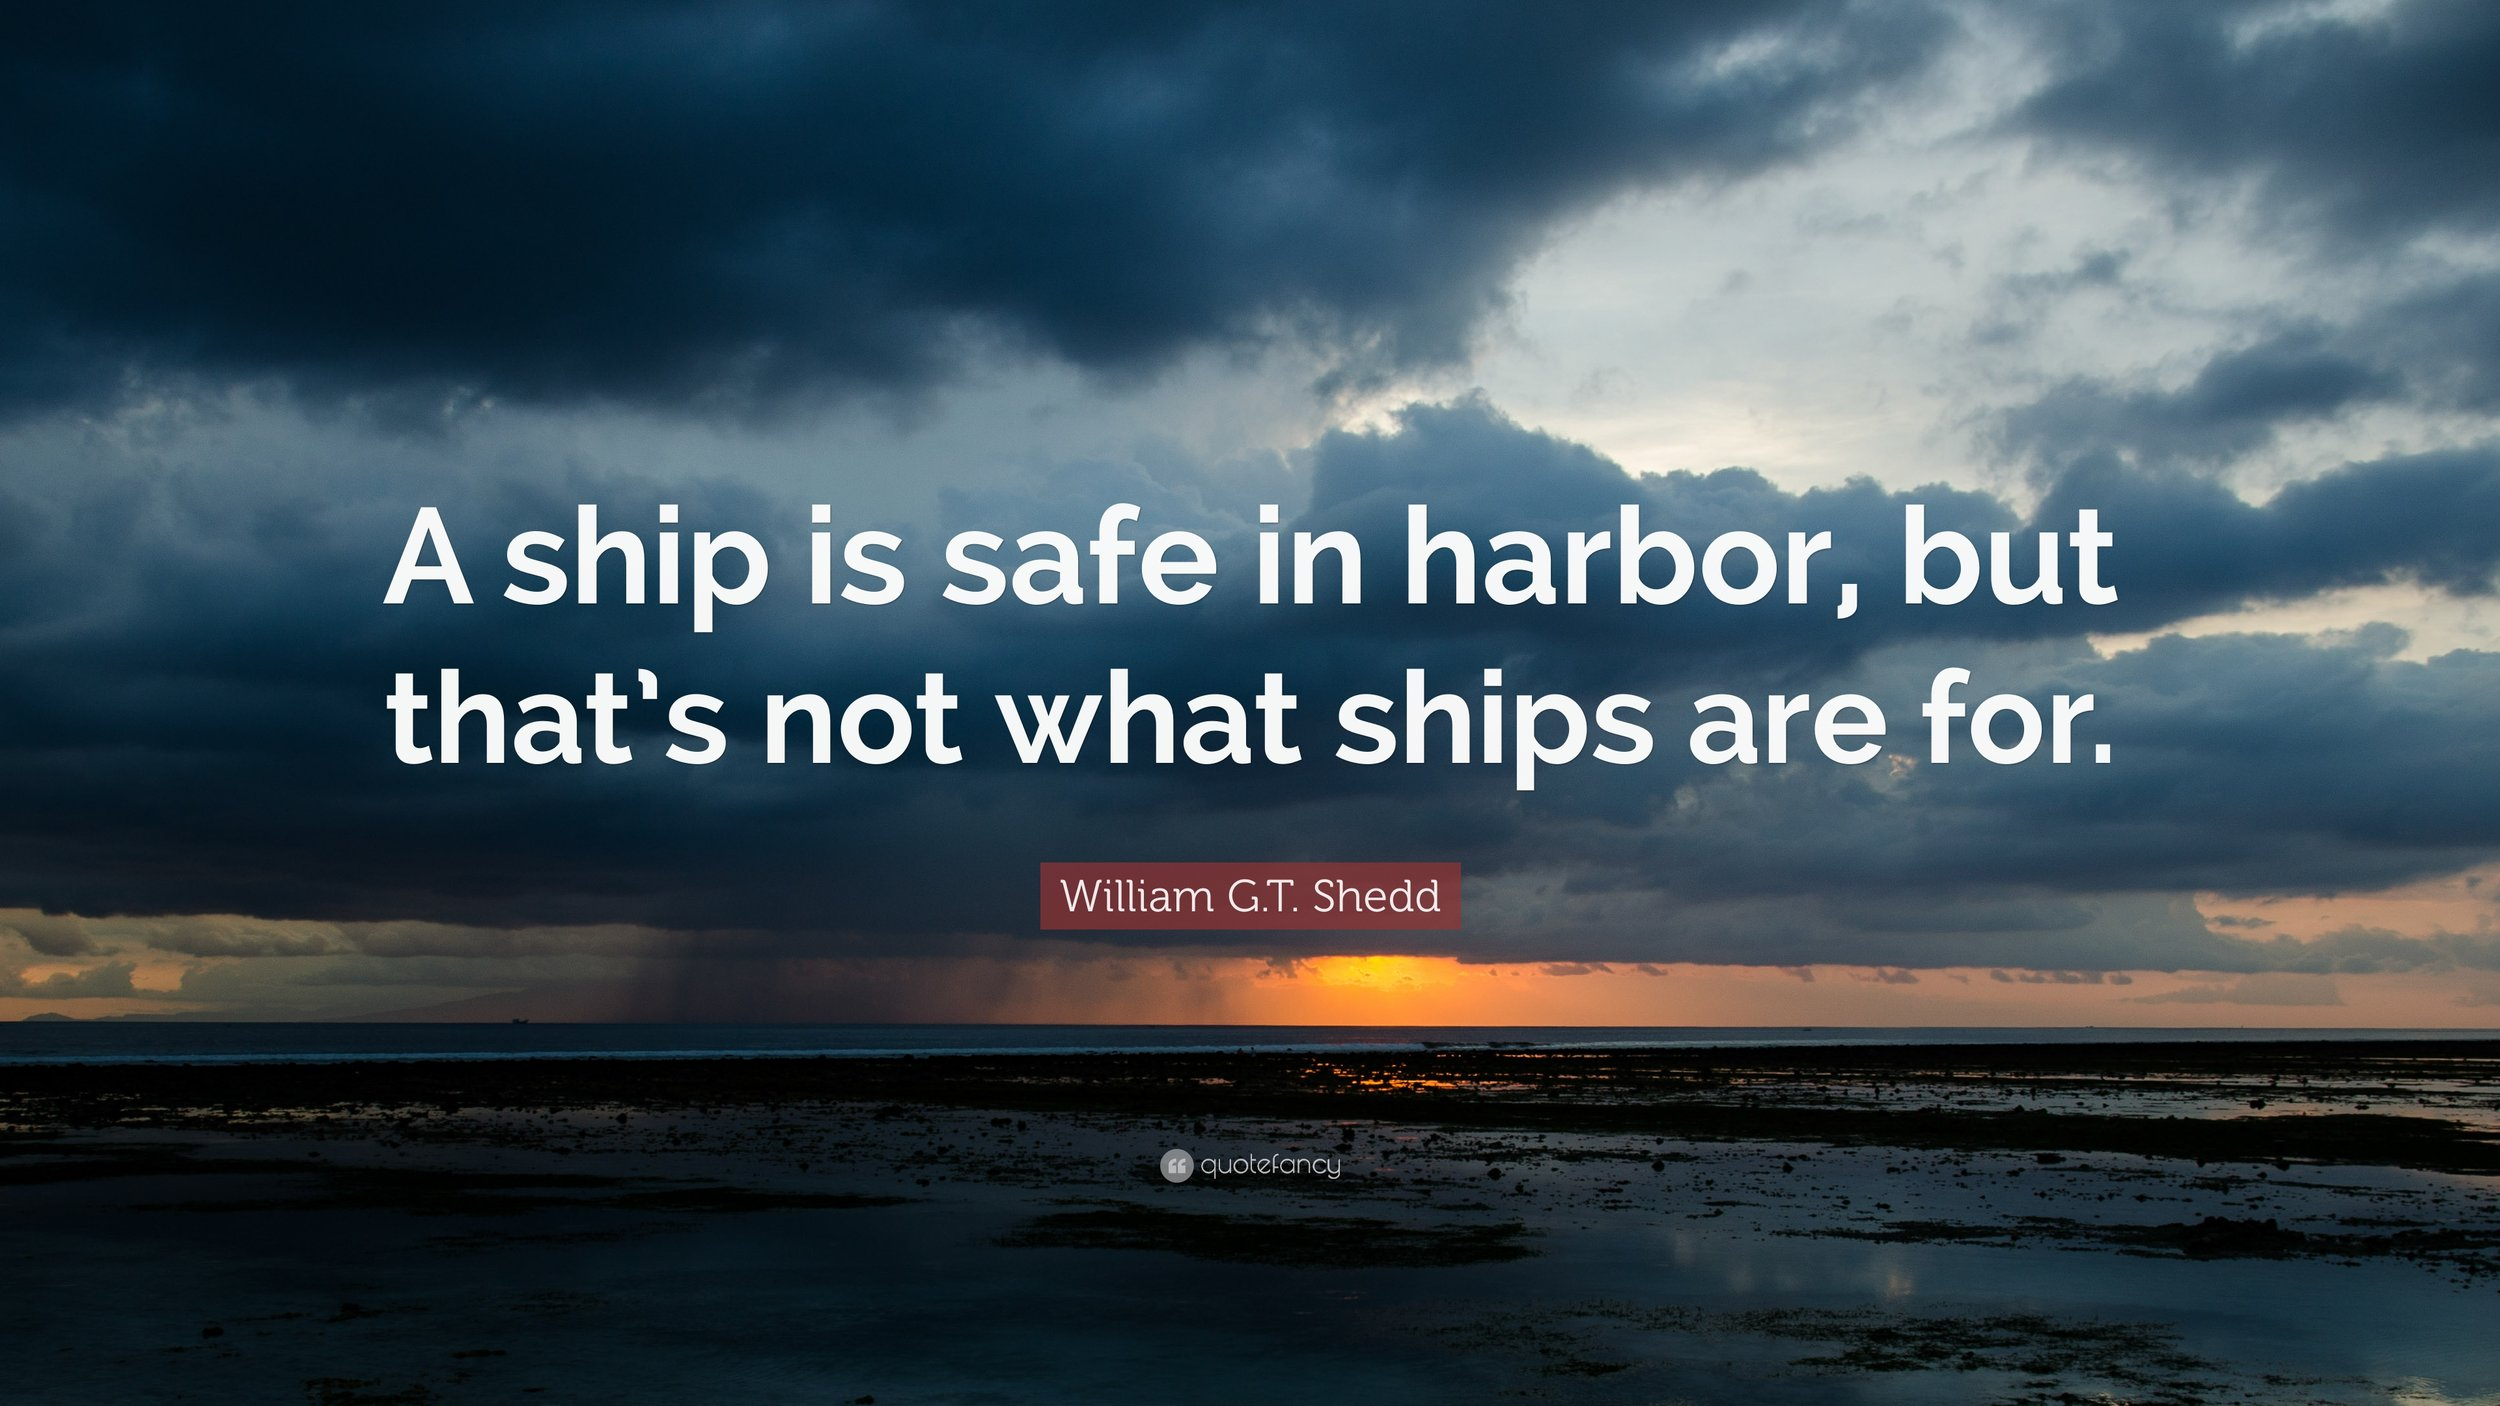 45661-William-G-T-Shedd-Quote-A-ship-is-safe-in-harbor-but-that-s-not.jpg